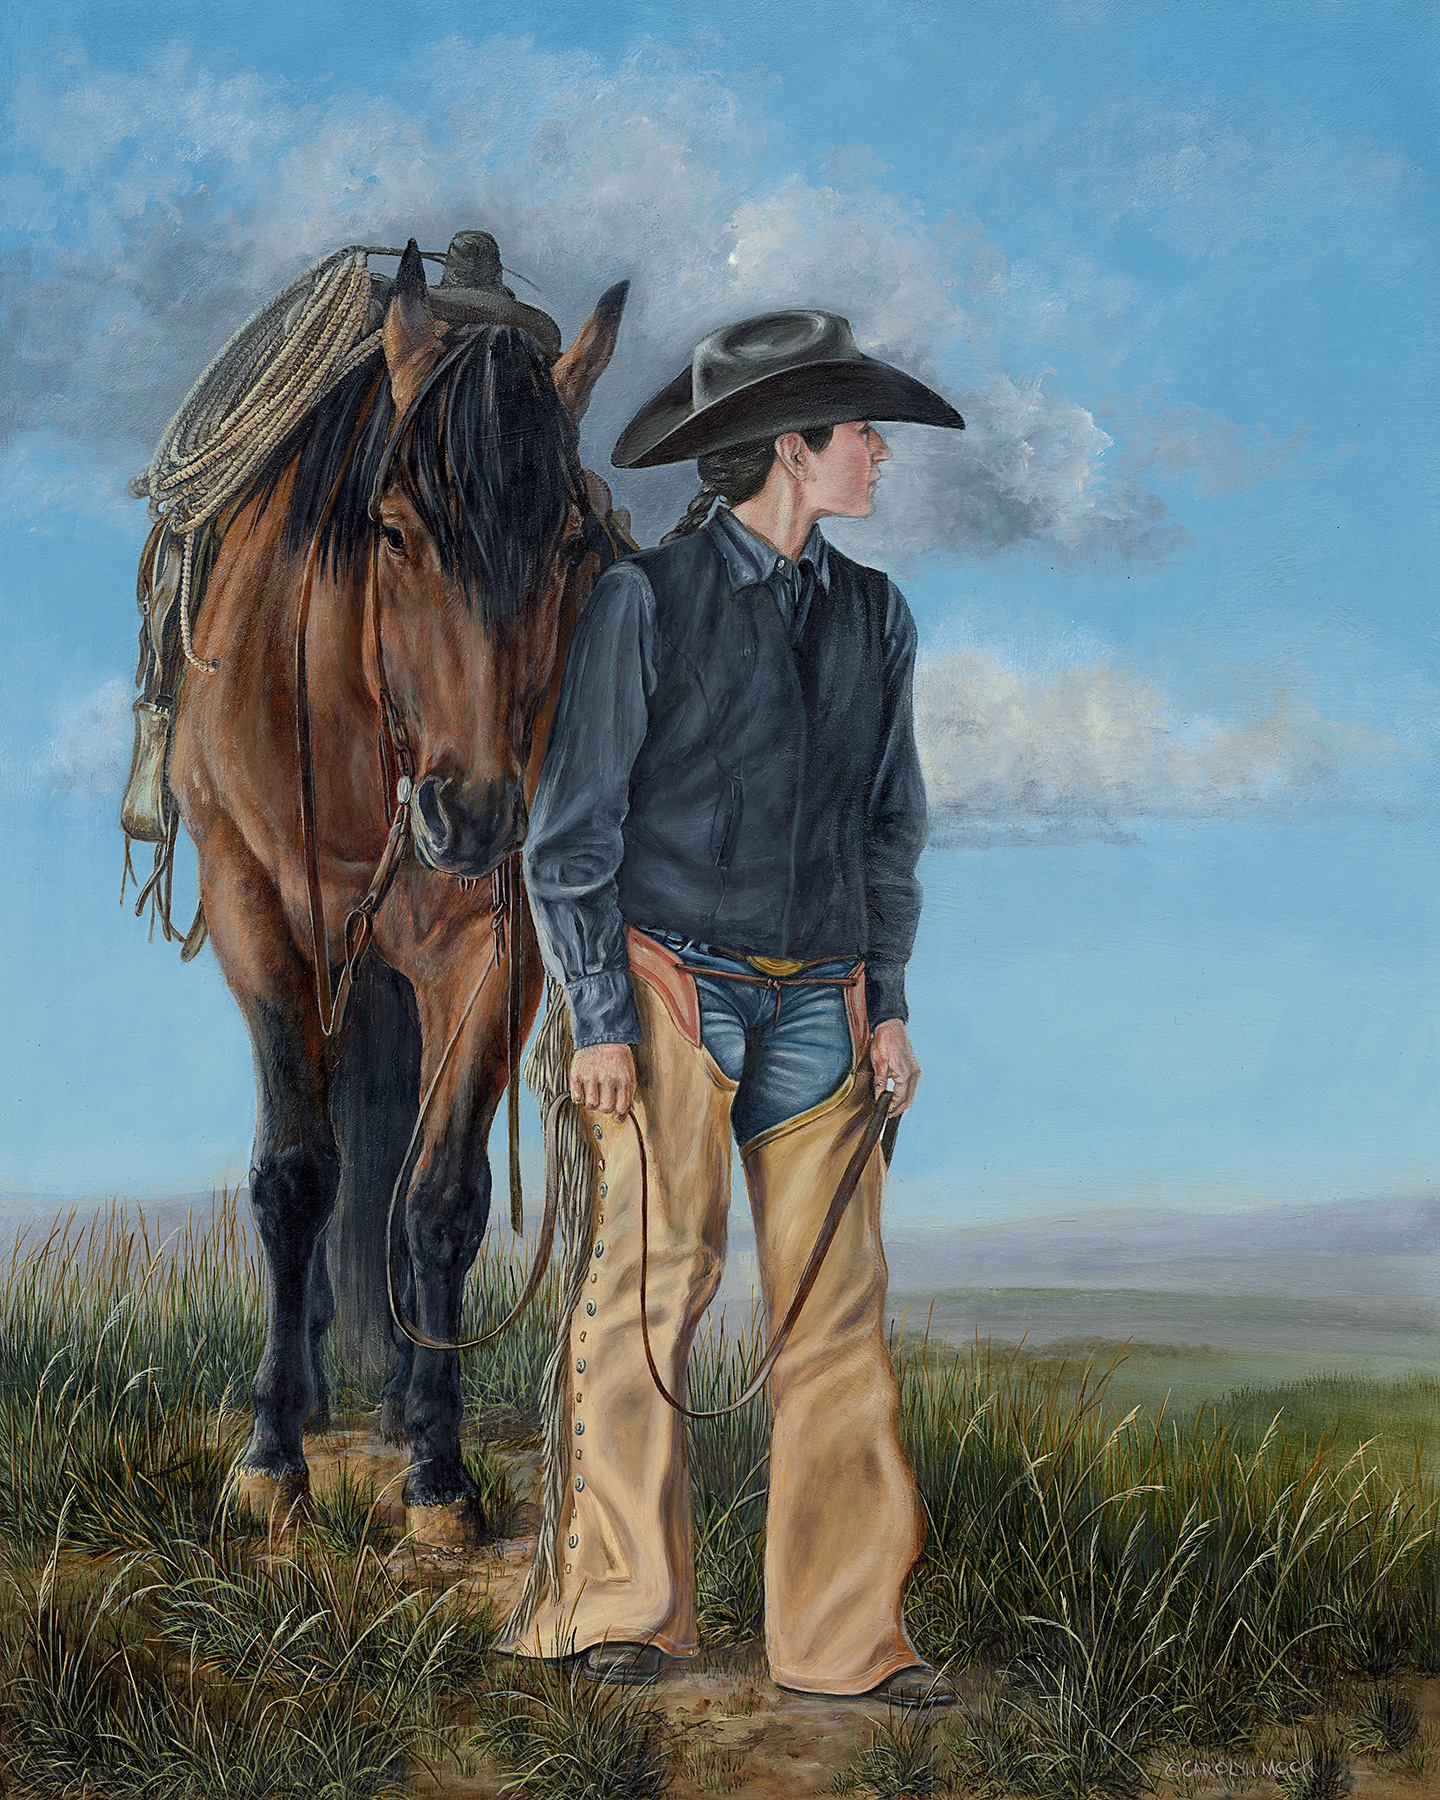 A cowboy with his horse looks to the horizon in an open field